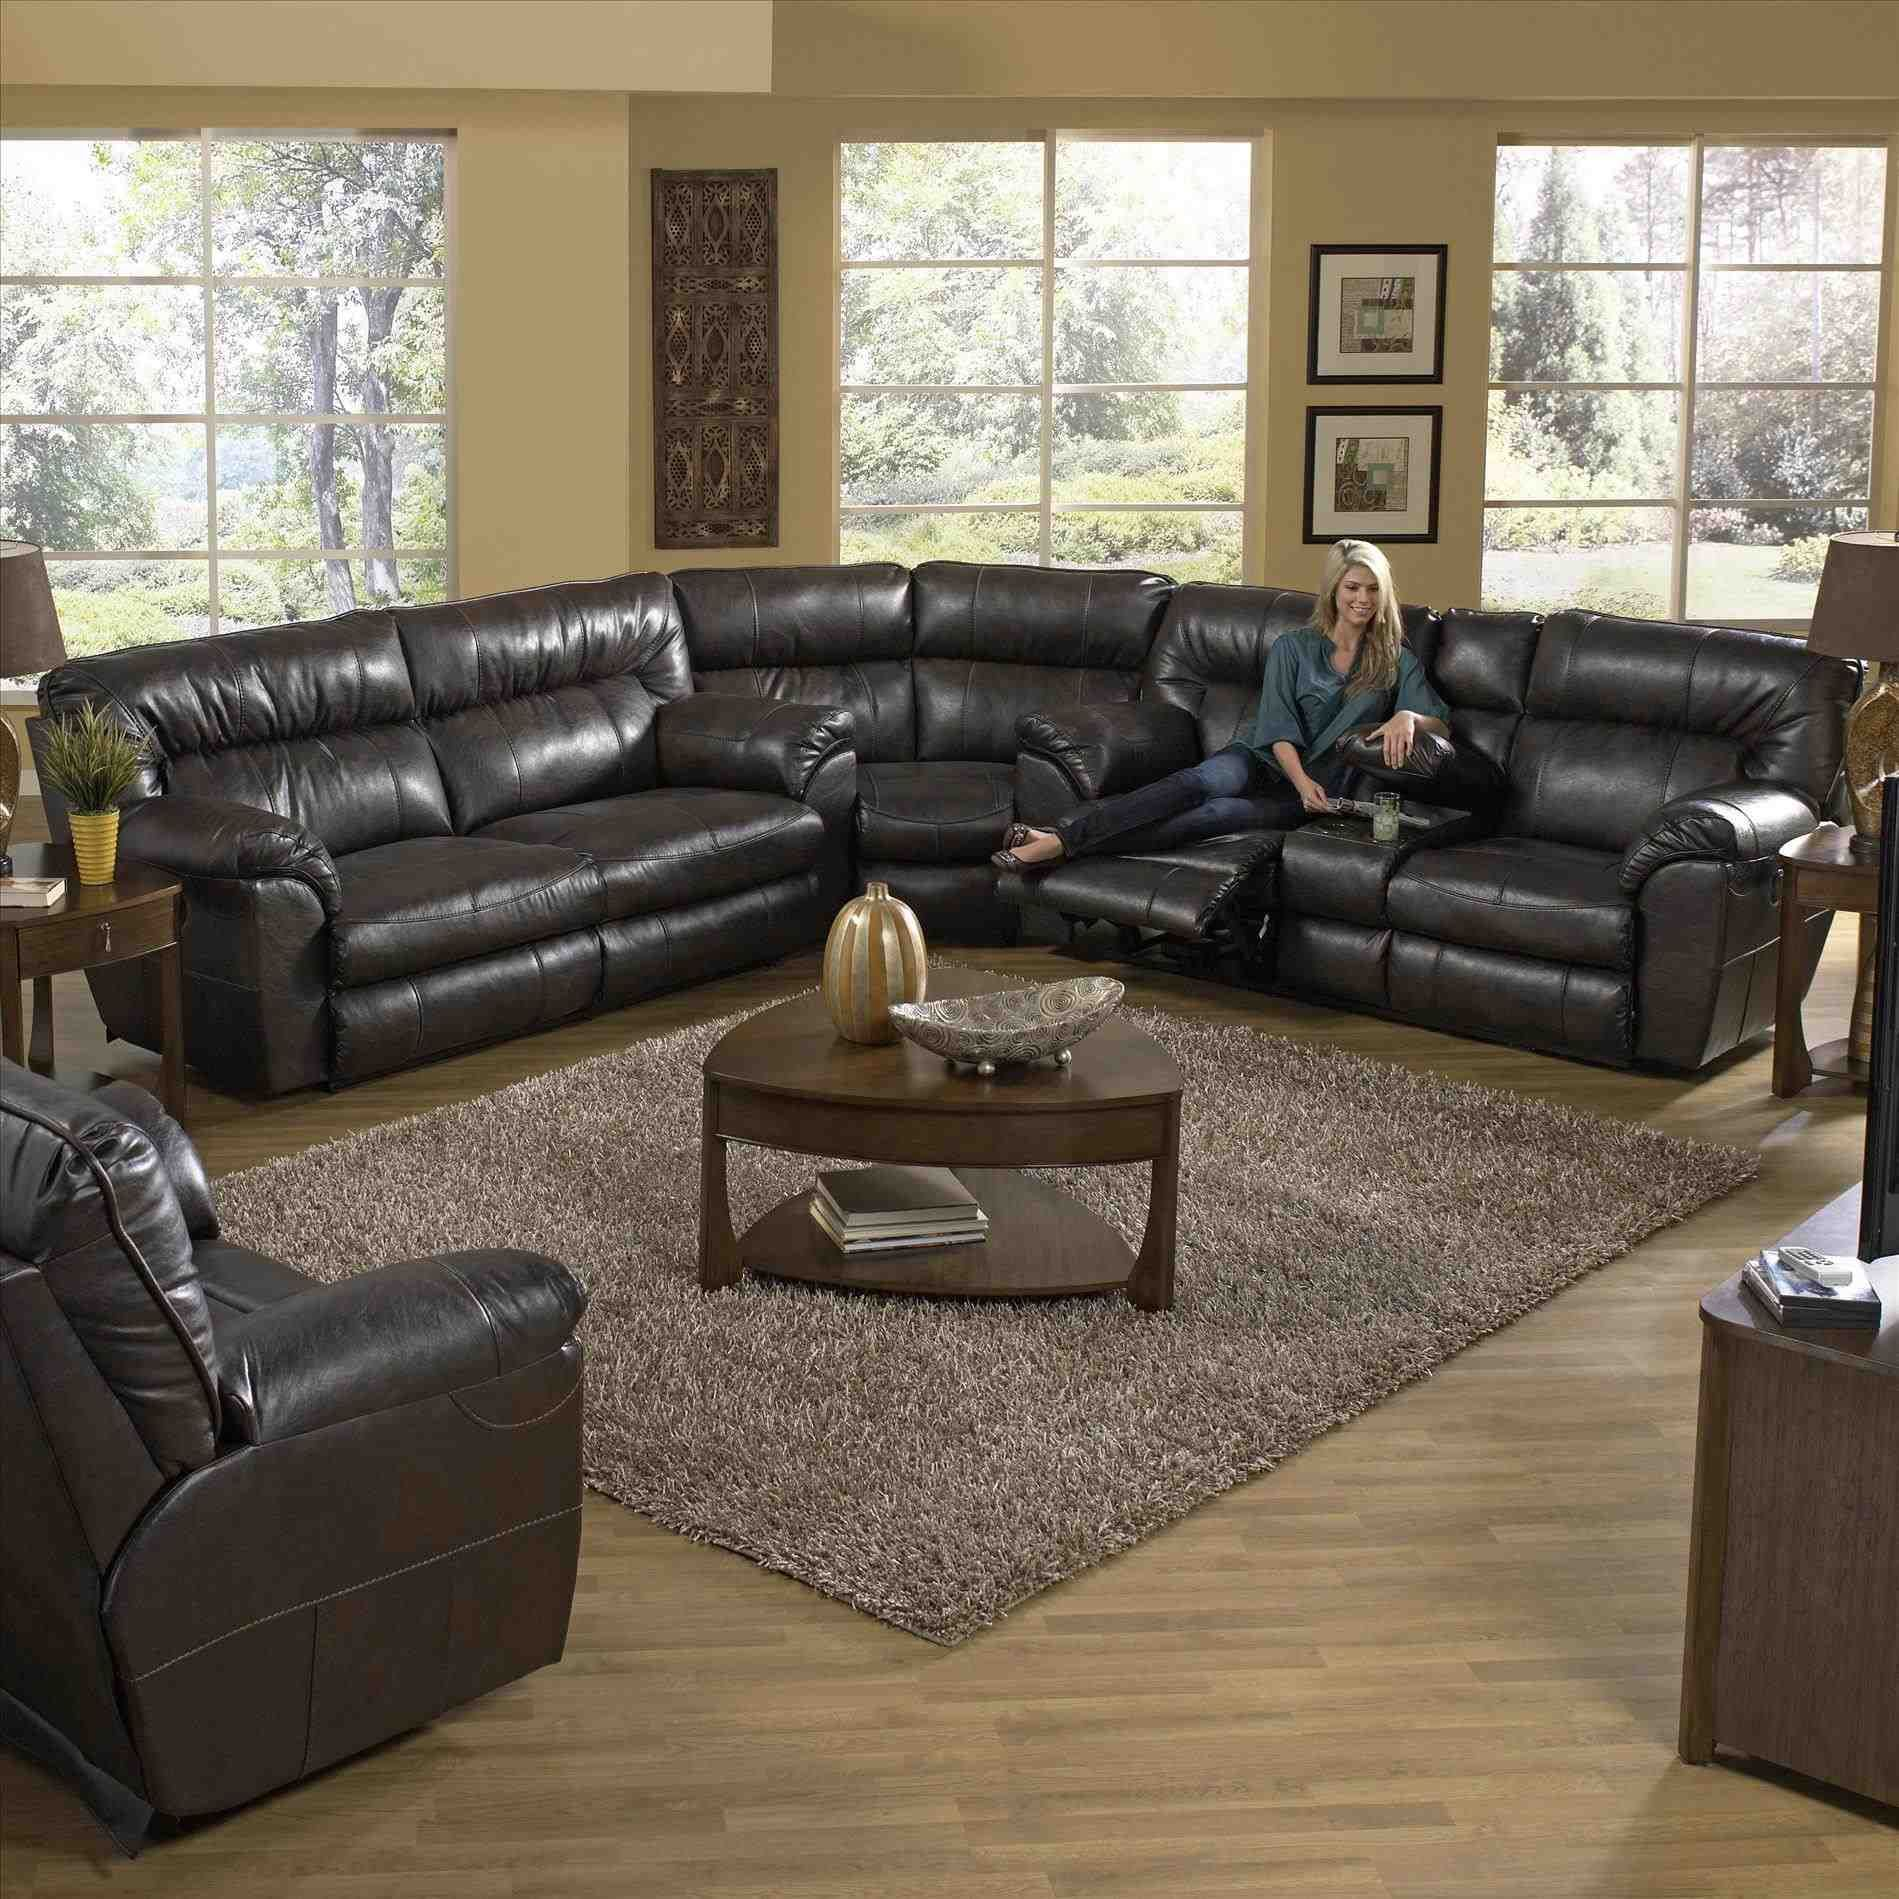 catnapper reclining sofas reviews sofa mart bismarck nd recliner complaints top 461 and about macy s furniture my mother bought an electric lift dorel living real